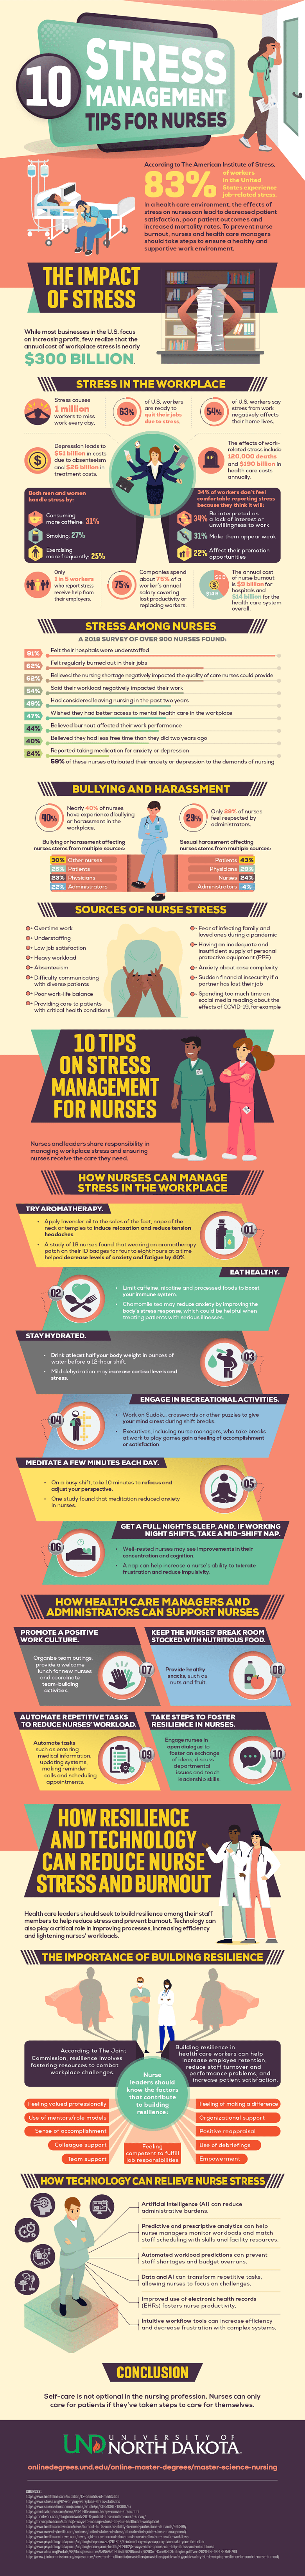 How nurses and leaders can work together to better manage nurse stress.